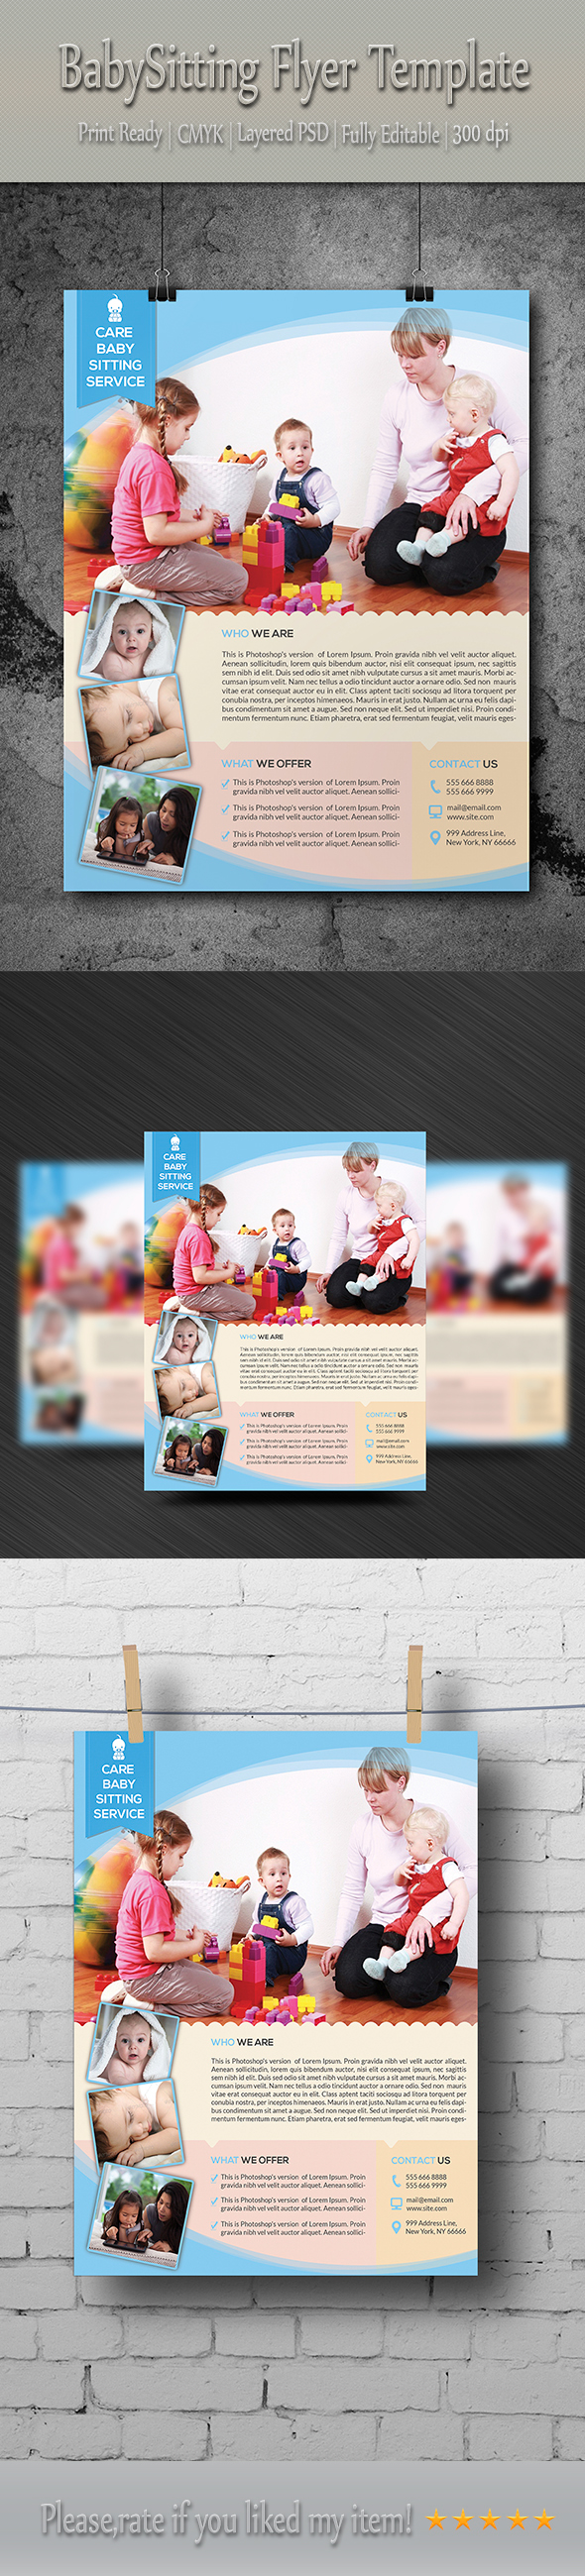 babysitting daycare flyer template on behance